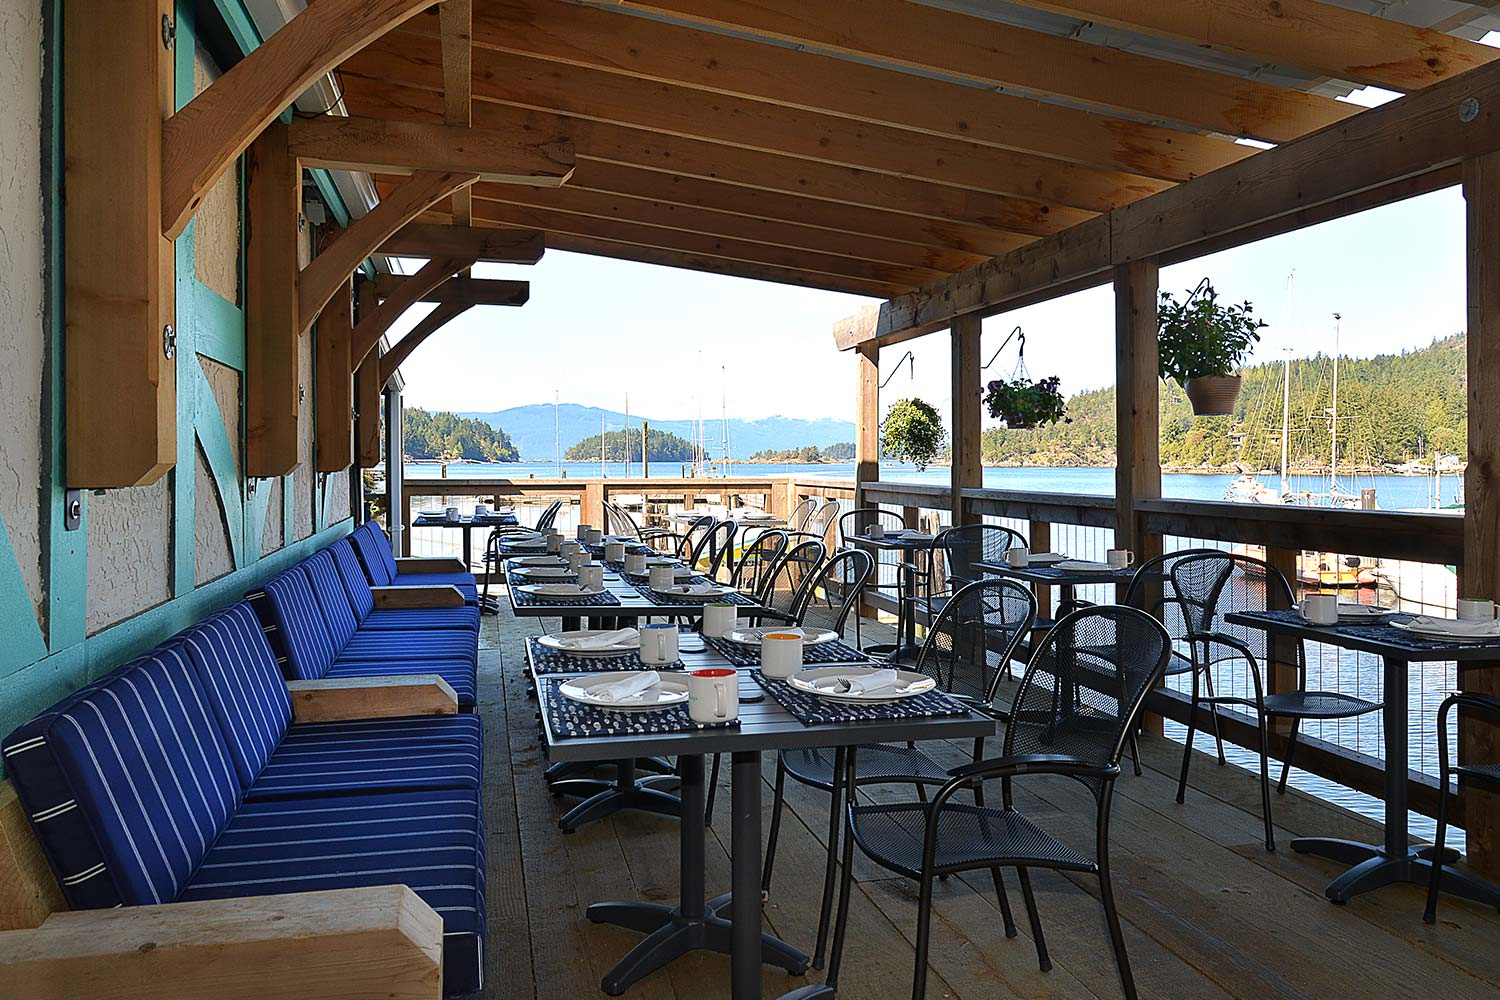 One of the best outdoor patio restaurants in Pender Harbour. Enjoy covered dining on the restaurant patio at John Henry's Cafe.